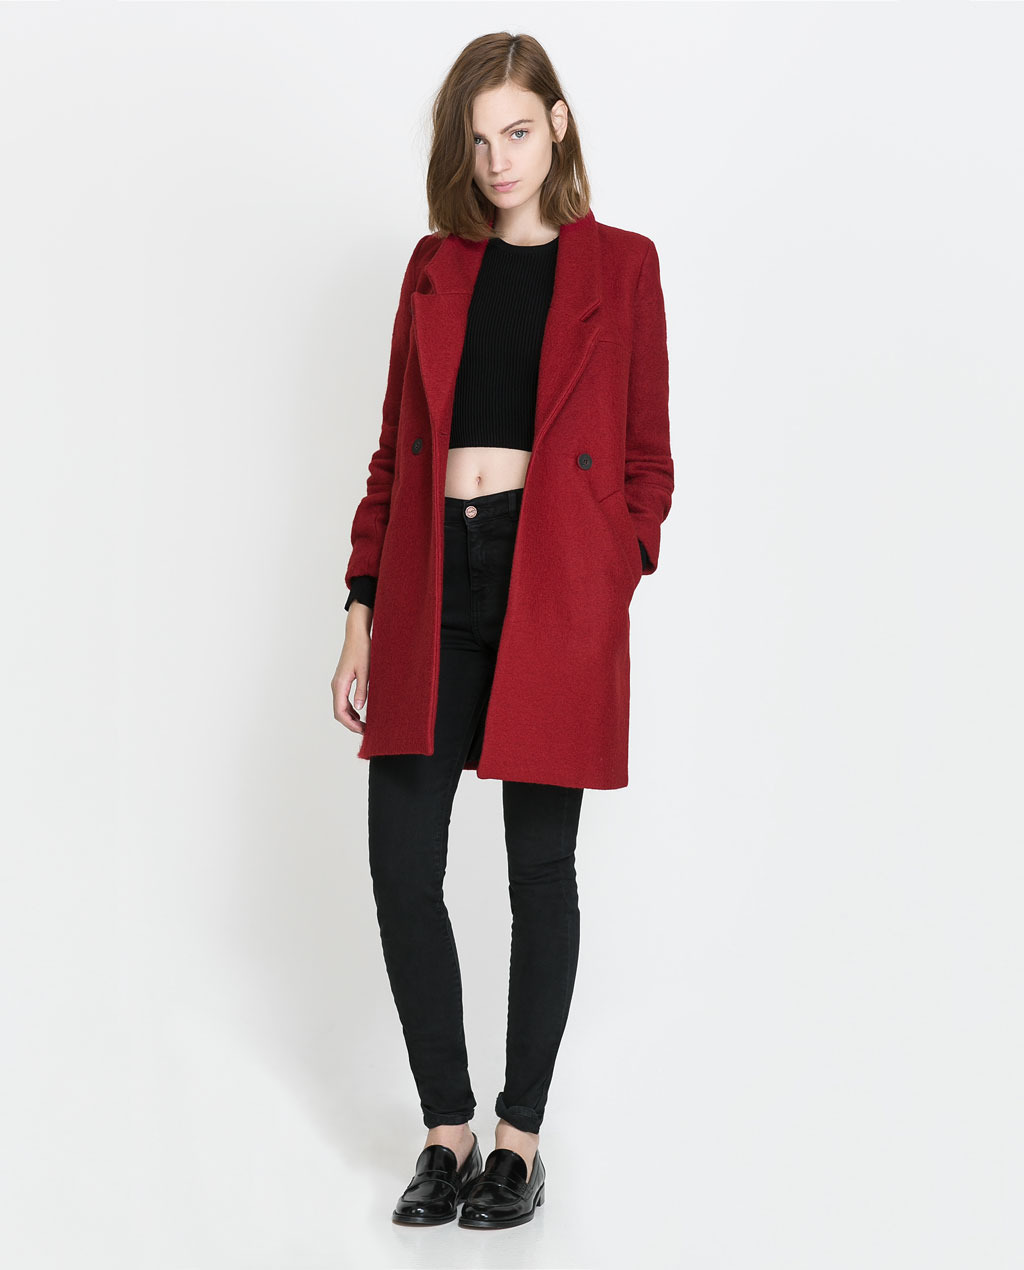 Double Breasted Coat - pattern: plain; style: double breasted; collar: standard lapel/rever collar; length: mid thigh; predominant colour: true red; occasions: casual, work; fit: straight cut (boxy); fibres: wool - mix; sleeve length: long sleeve; sleeve style: standard; collar break: medium; pattern type: fabric; texture group: woven bulky/heavy; season: a/w 2013